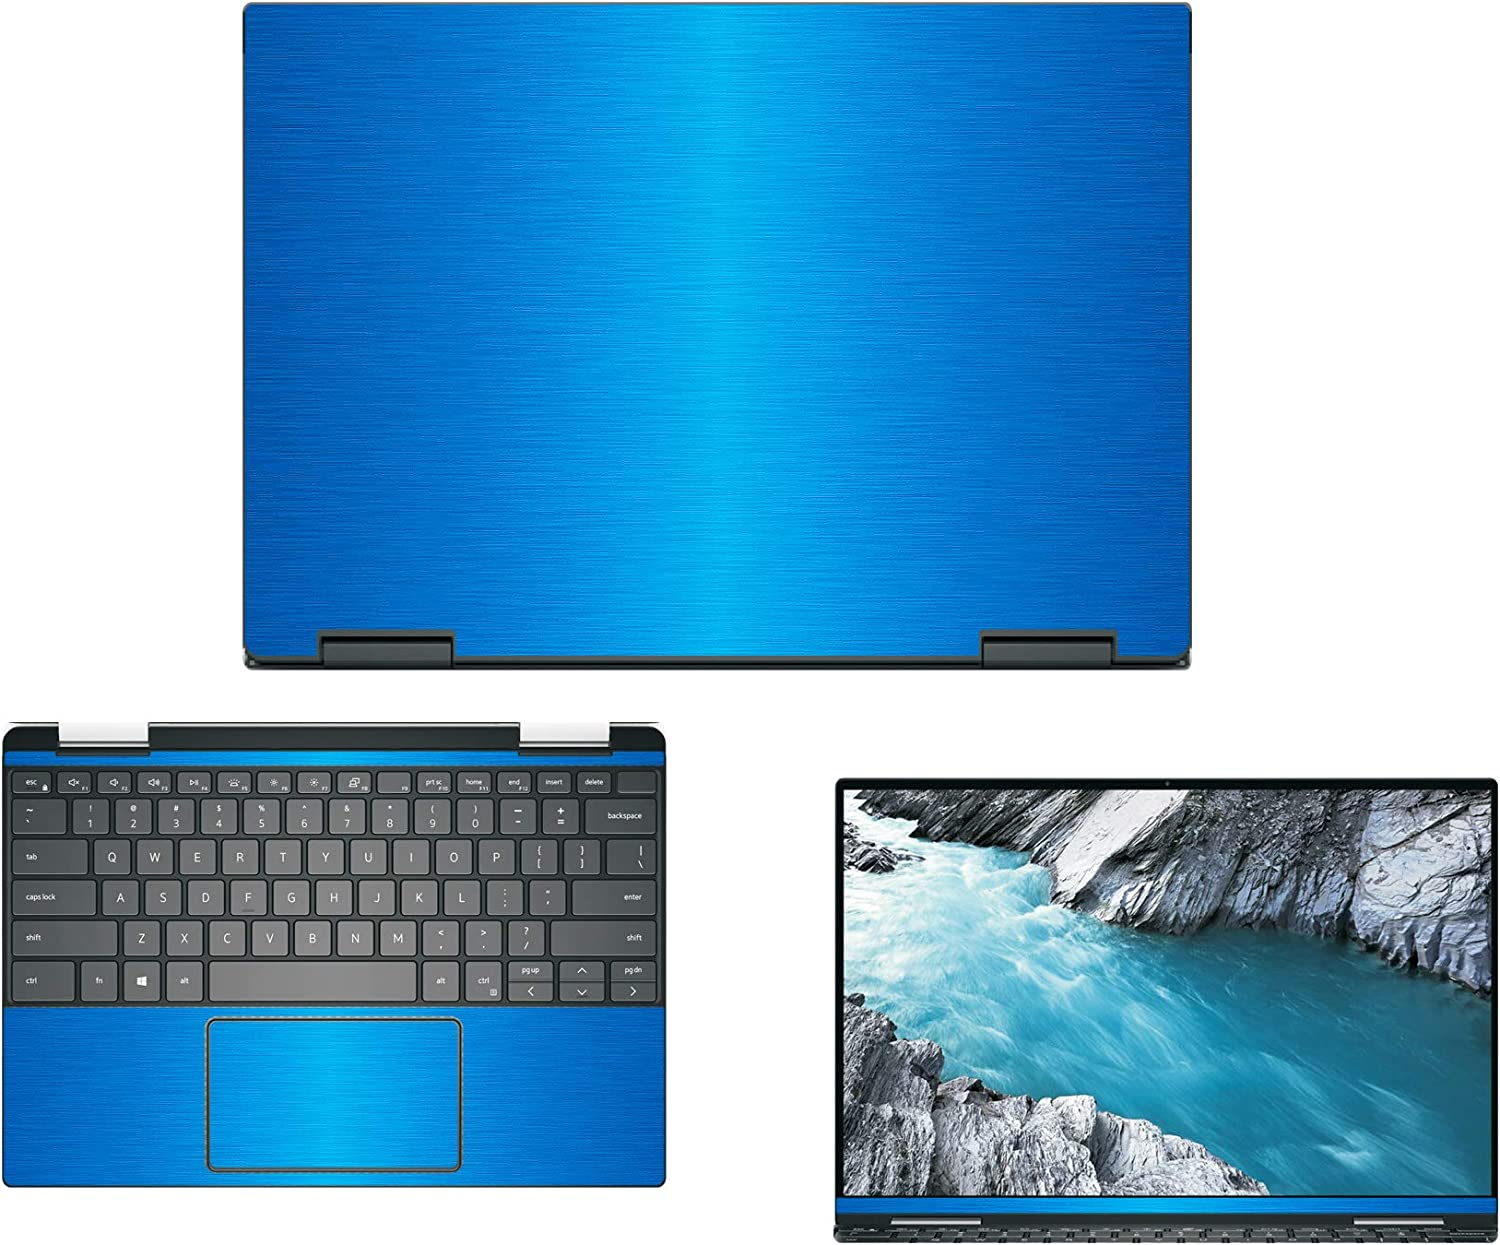 Decalrus - Protective Decal for Dell XPS 13 7390 2-in-1 (13.3